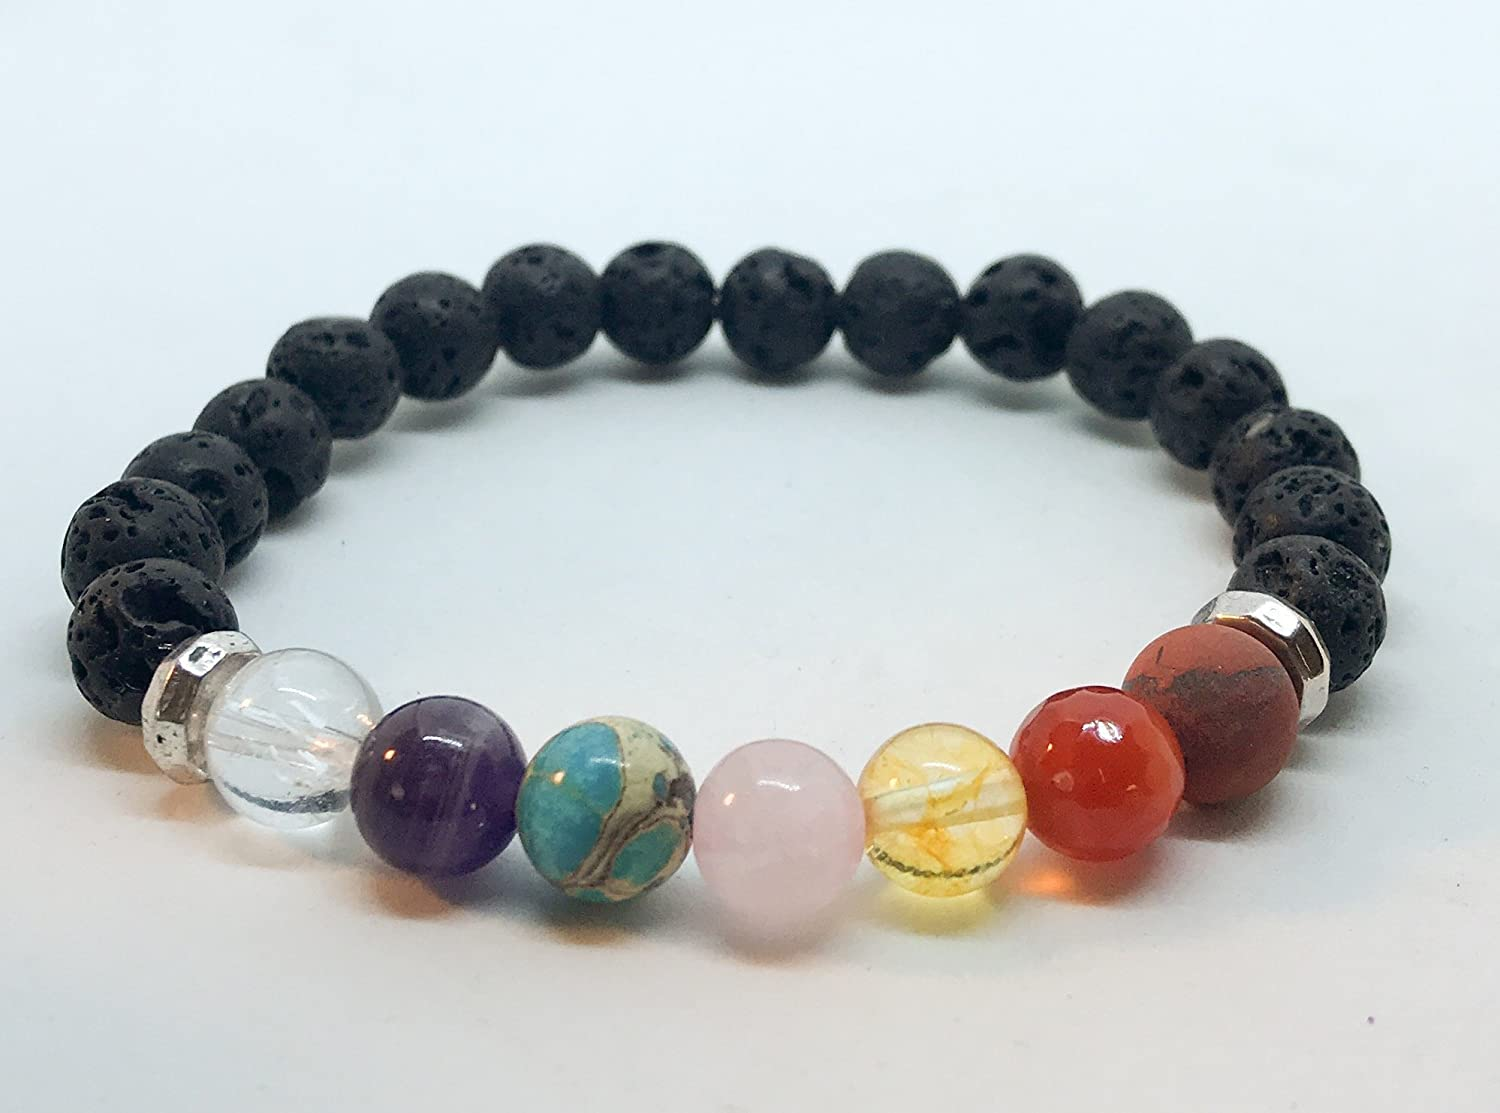 Chakra Aromatherapy Diffuser Bracelet Gift for her , gift for mom, valentines